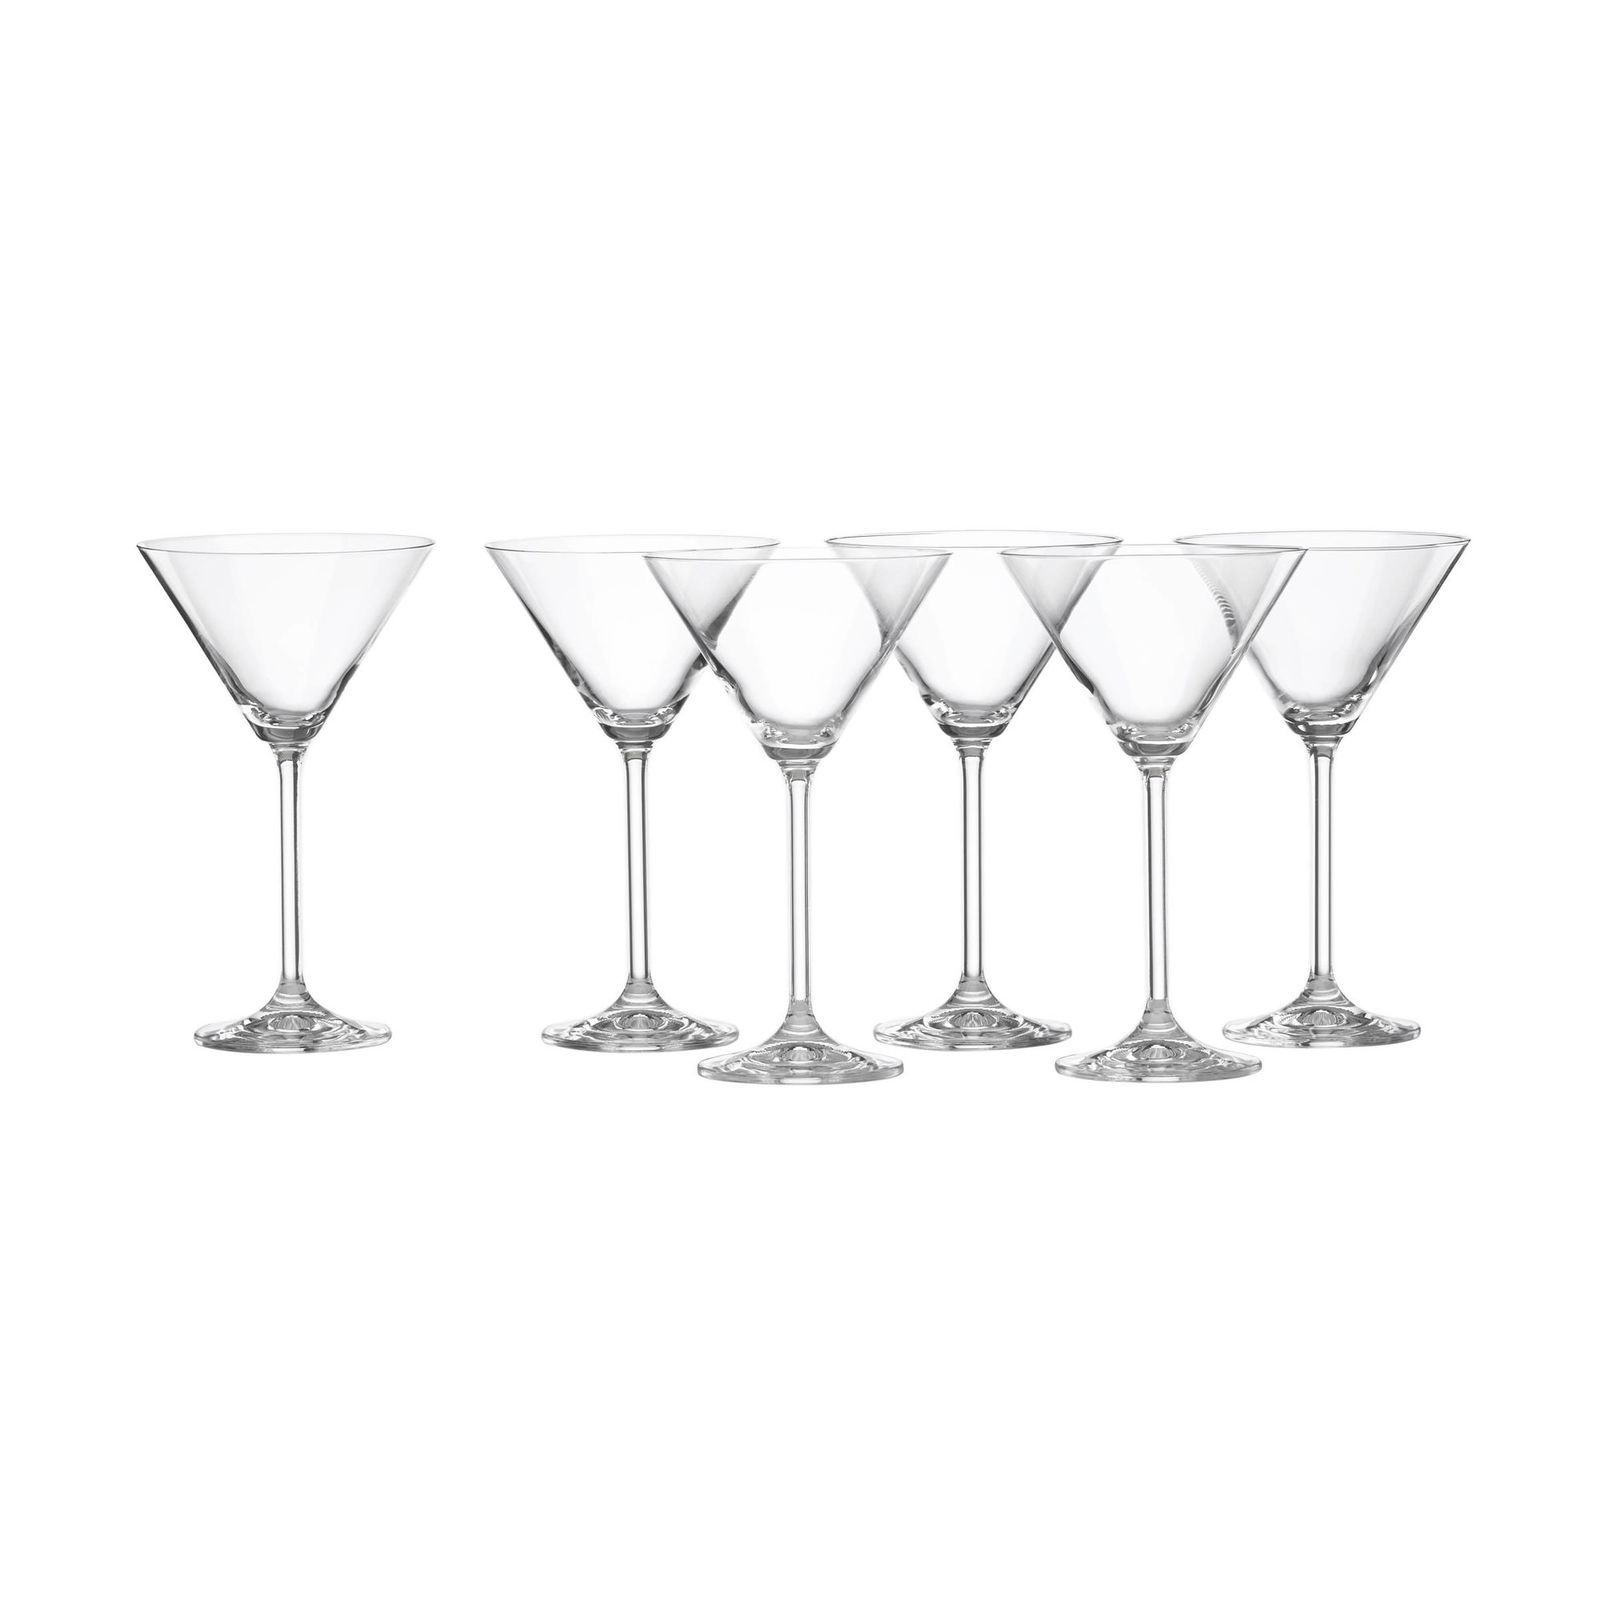 Lenox Tuscany Classics Cocktail Glass Set of 6 Opened box